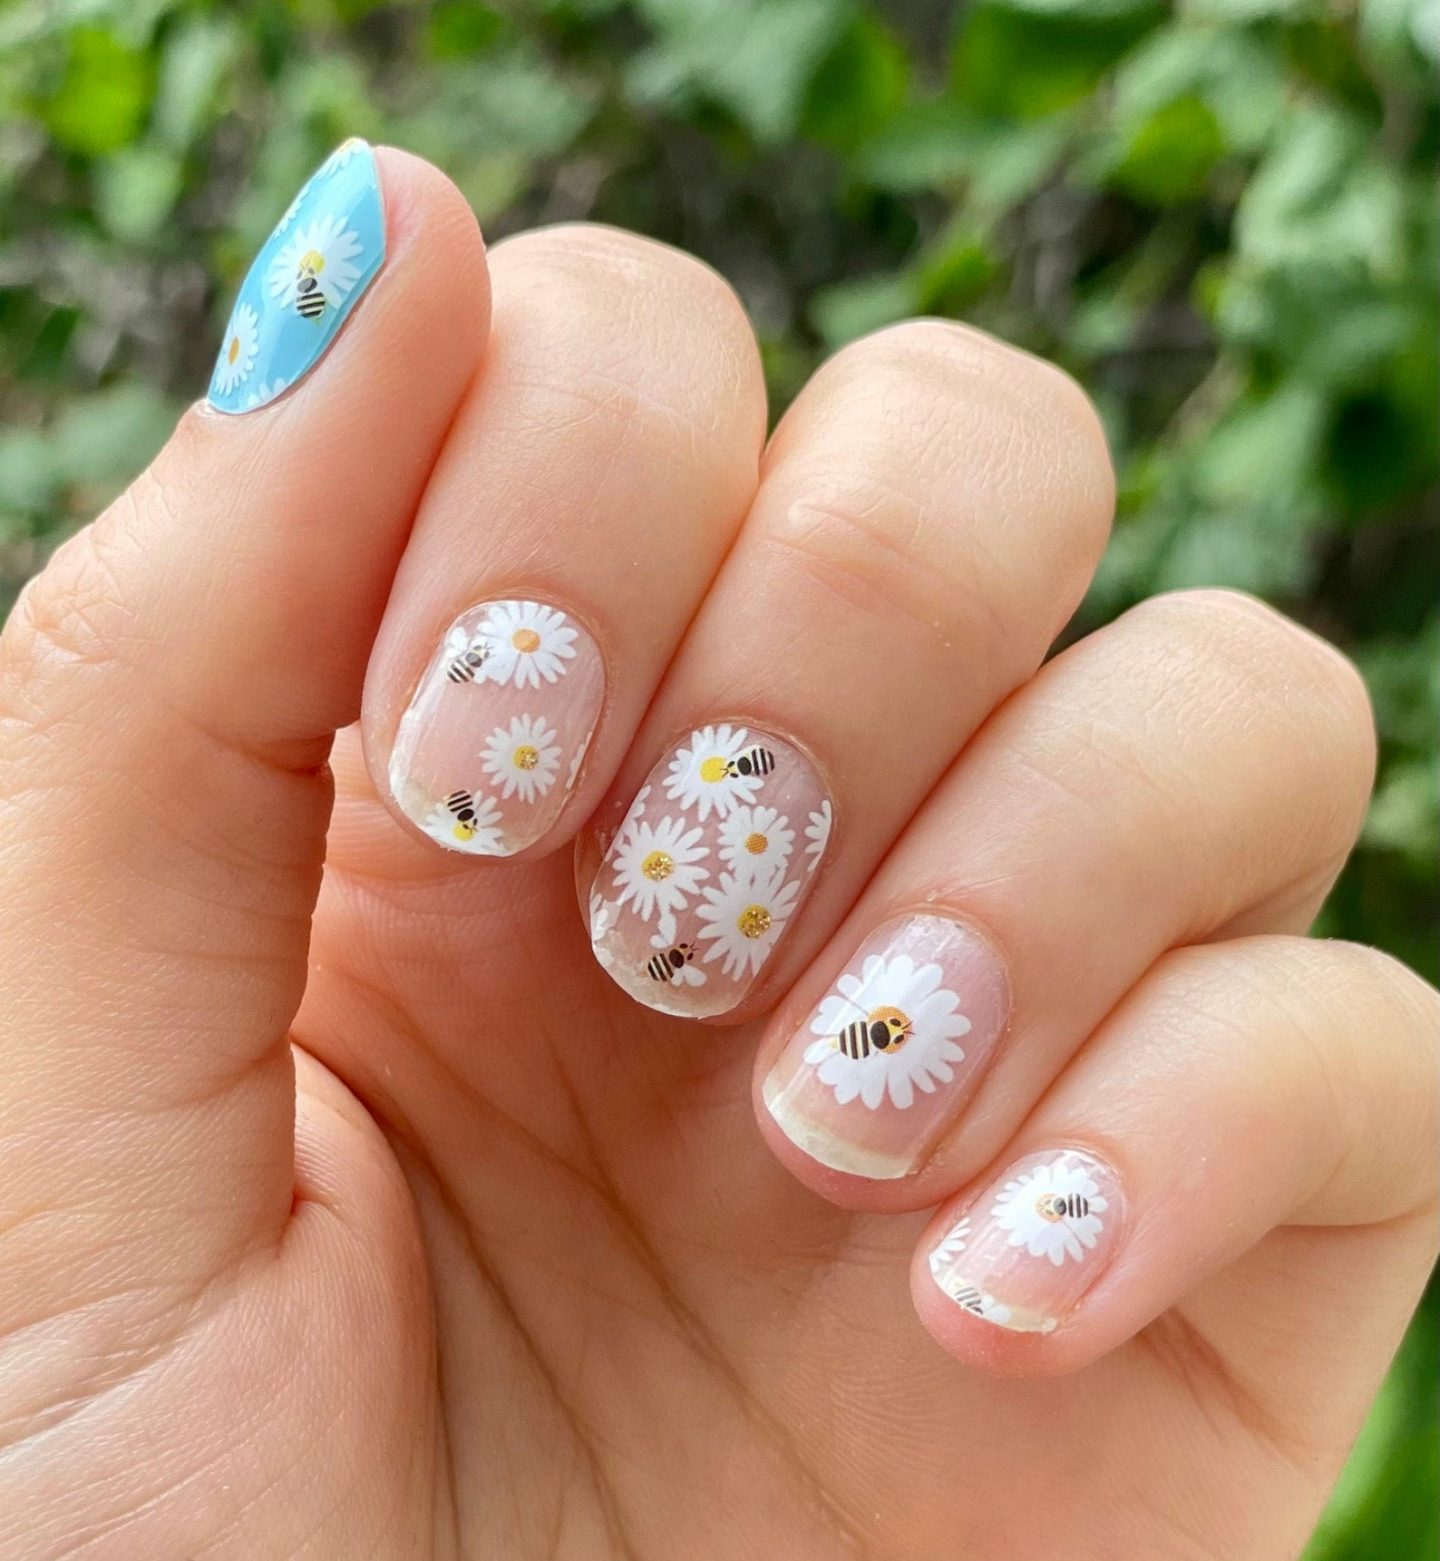 Cute short daisy nails with bees